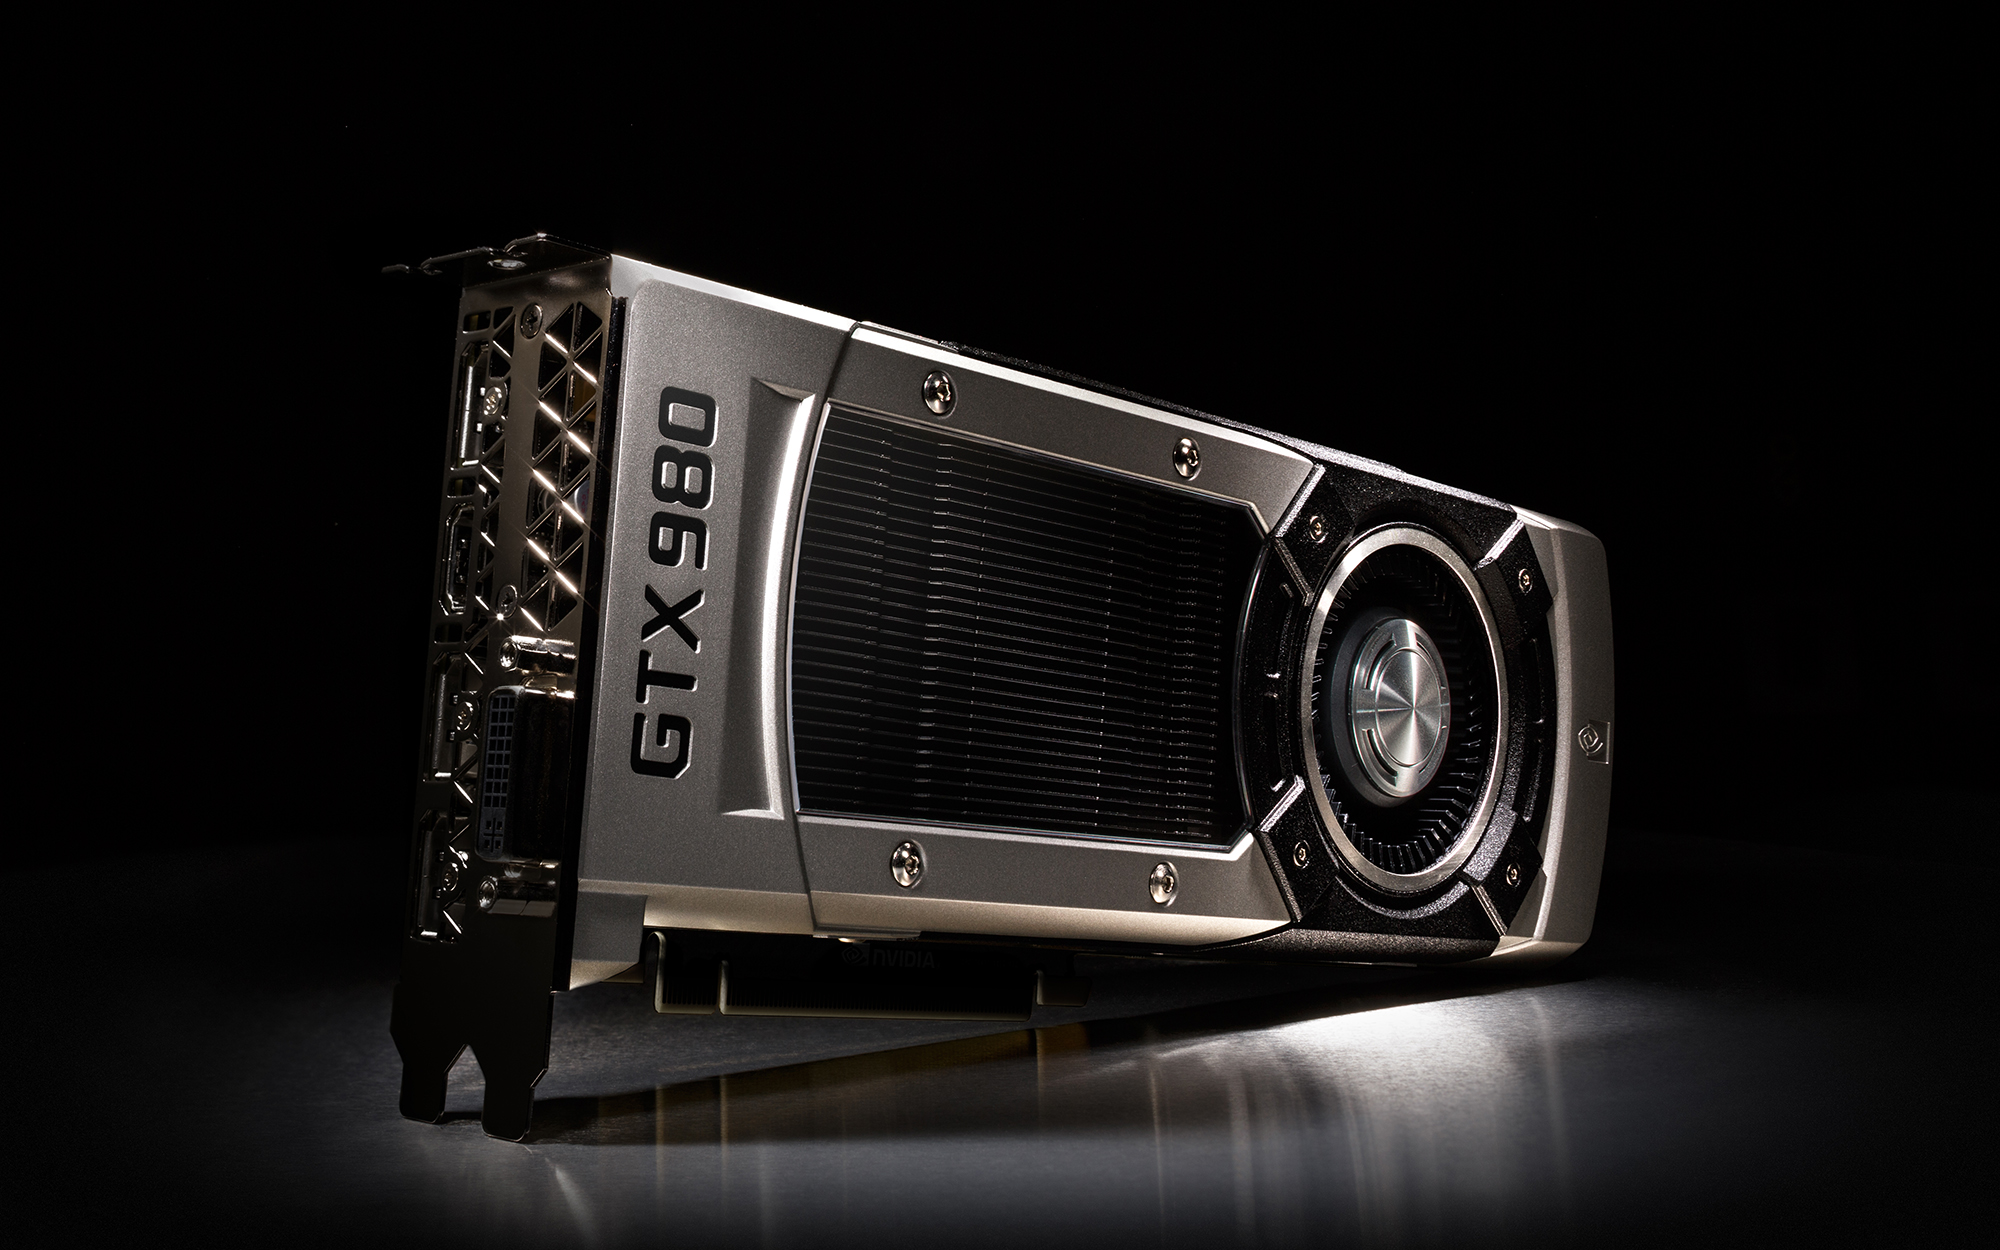 introducing the amazing new geforce gtx 980 970 geforce an error occurred